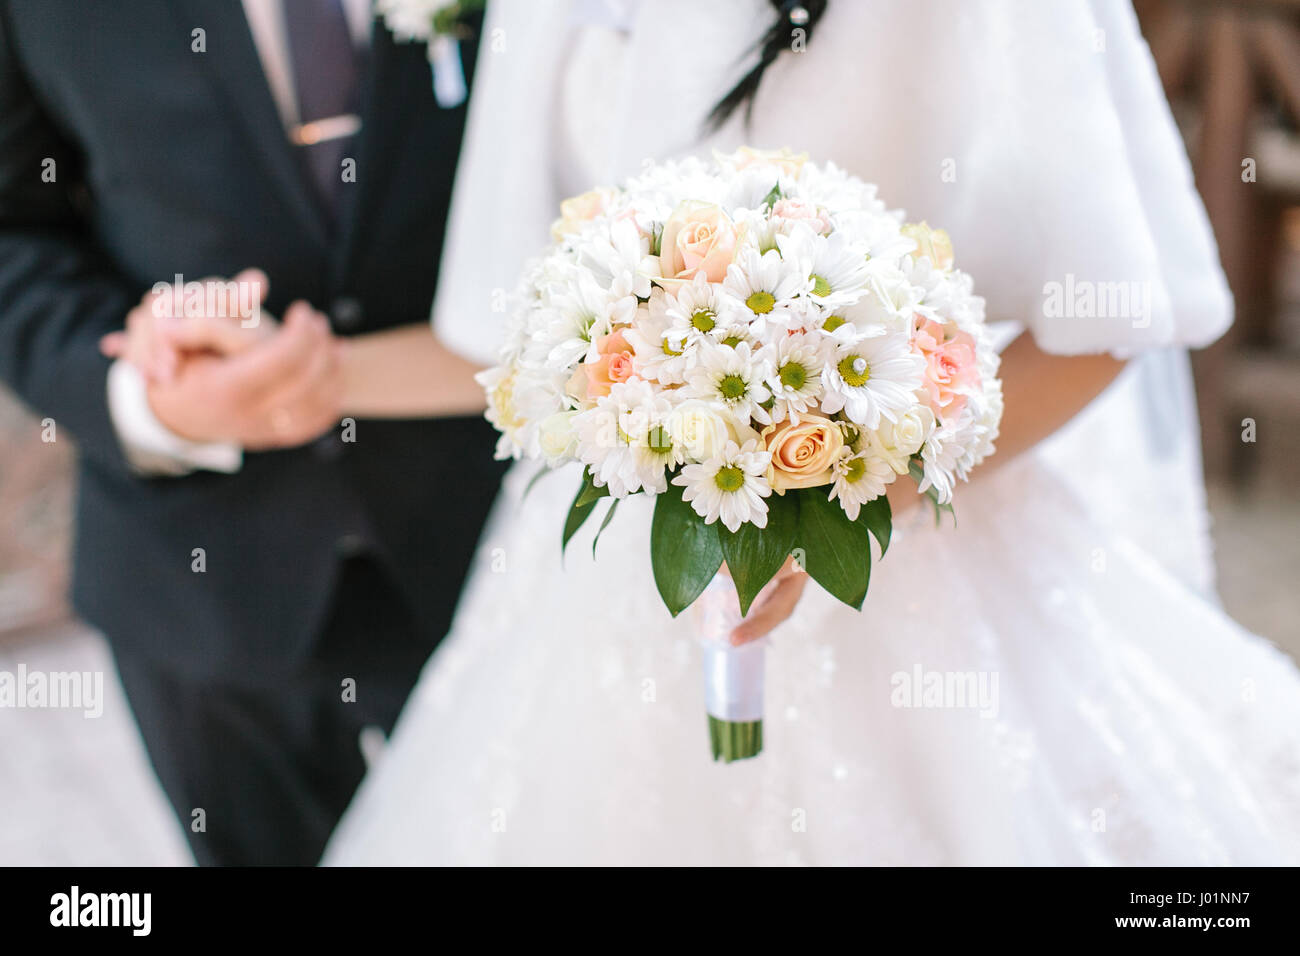 Wedding bouquet from fresh spring flowers bride holding white stock wedding bouquet from fresh spring flowers bride holding white wedding bouquet close up the groom holding by a hand the bride in a white wedding dres izmirmasajfo